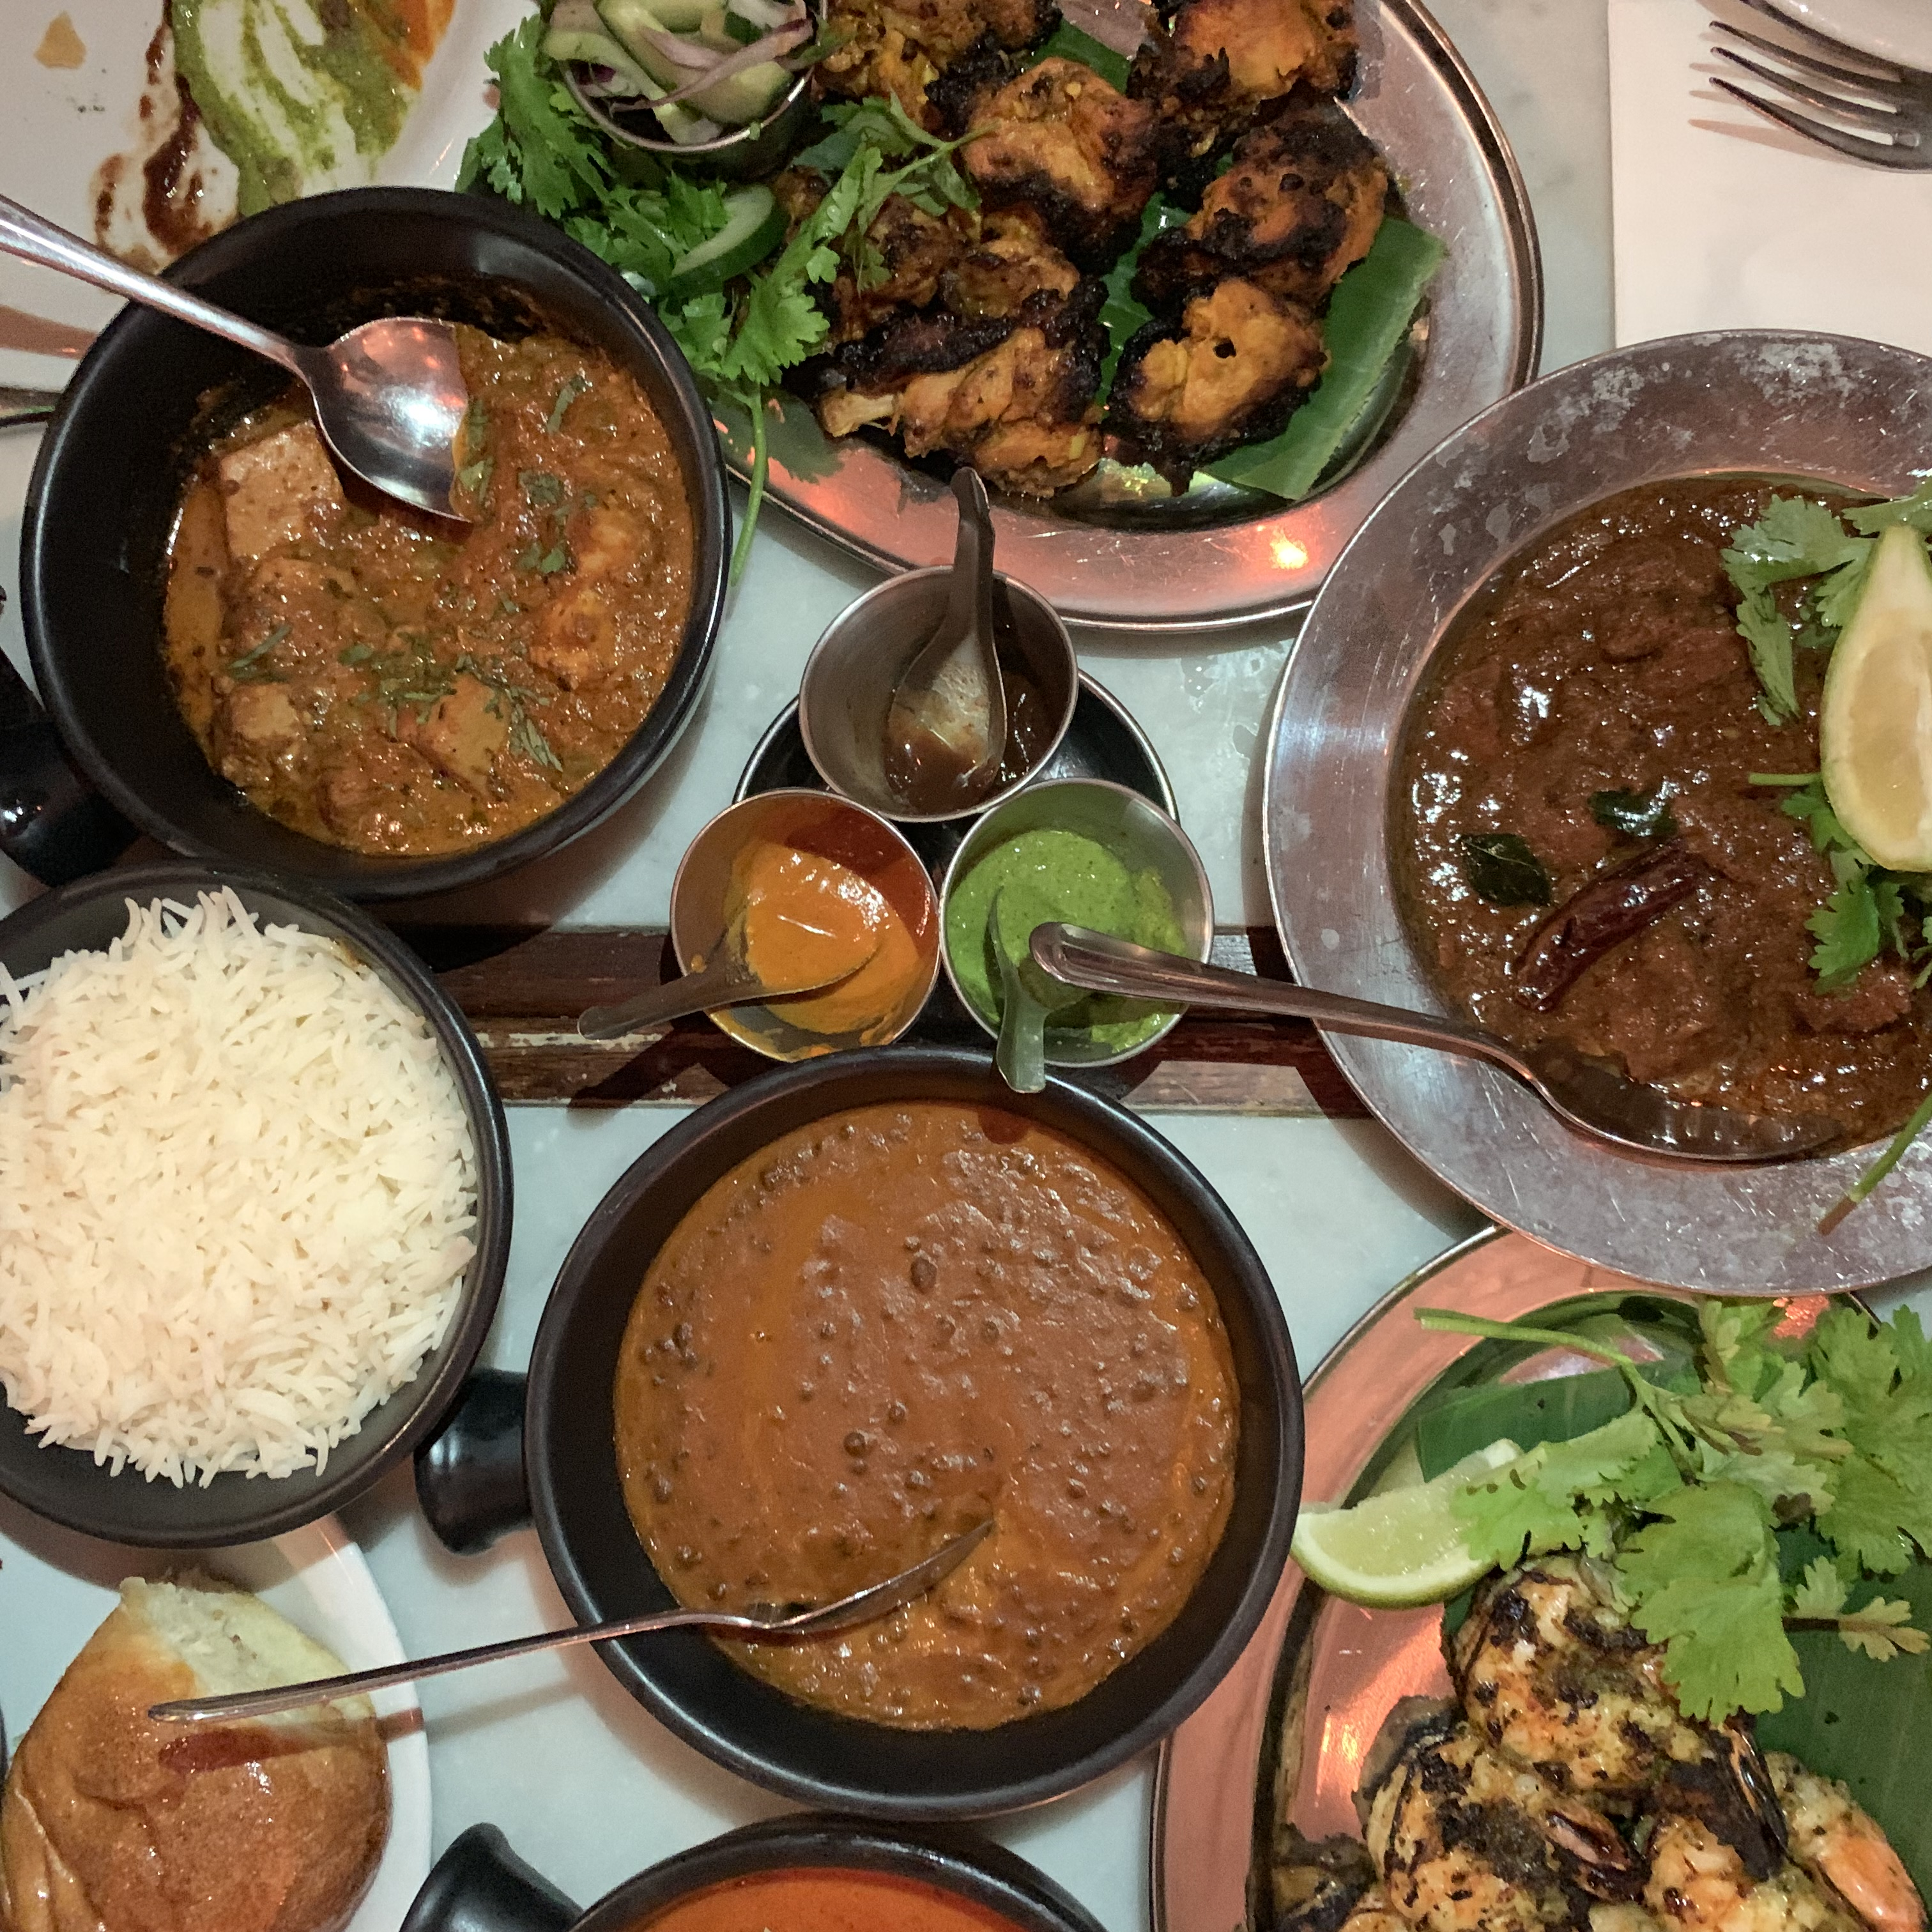 Indian food at Dishoom in Covent Garden, London